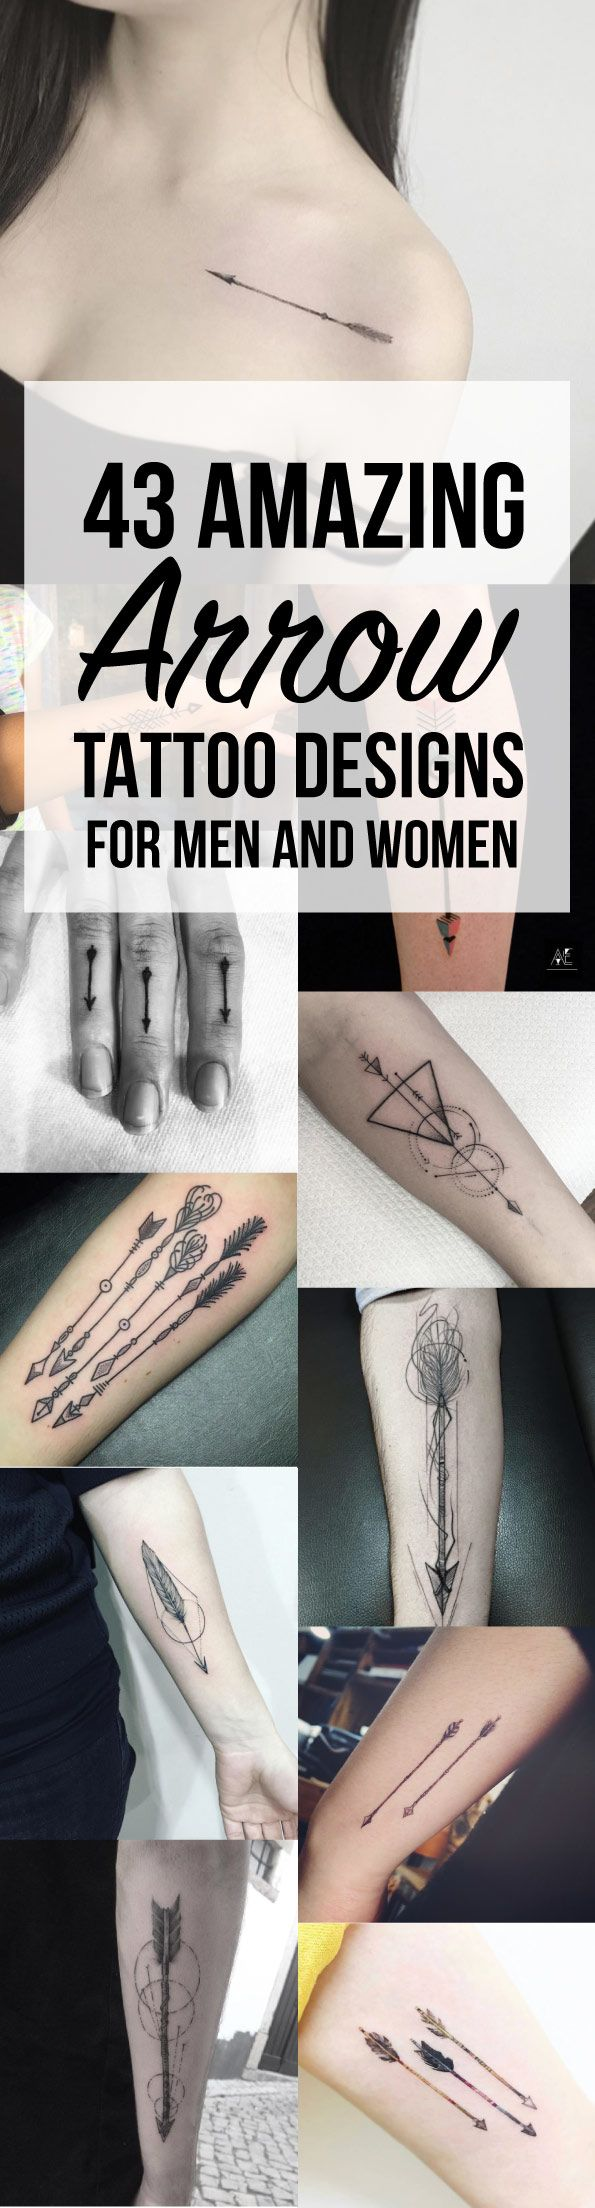 43 Amazing Arrow Tattoo Designs for Men and Women